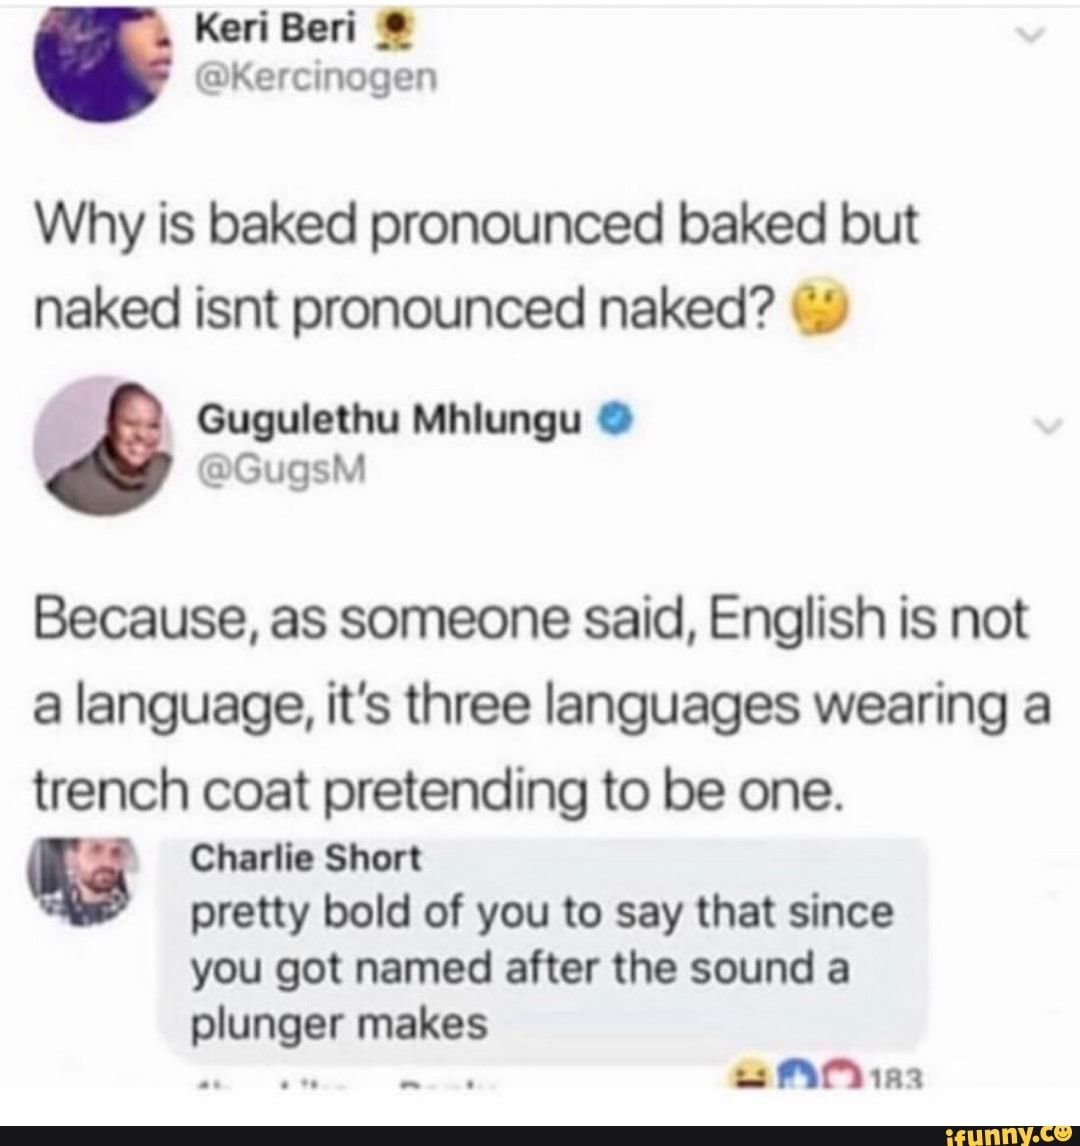 Why is baked pronounced baked but naked isnt pronounced naked? ªj) Because, as someone said, English is not a language, it's three languages wearing a trench coat pretending to be one. Q Charlie Shen pretty bold of you to say that since you got named after the sound a - )